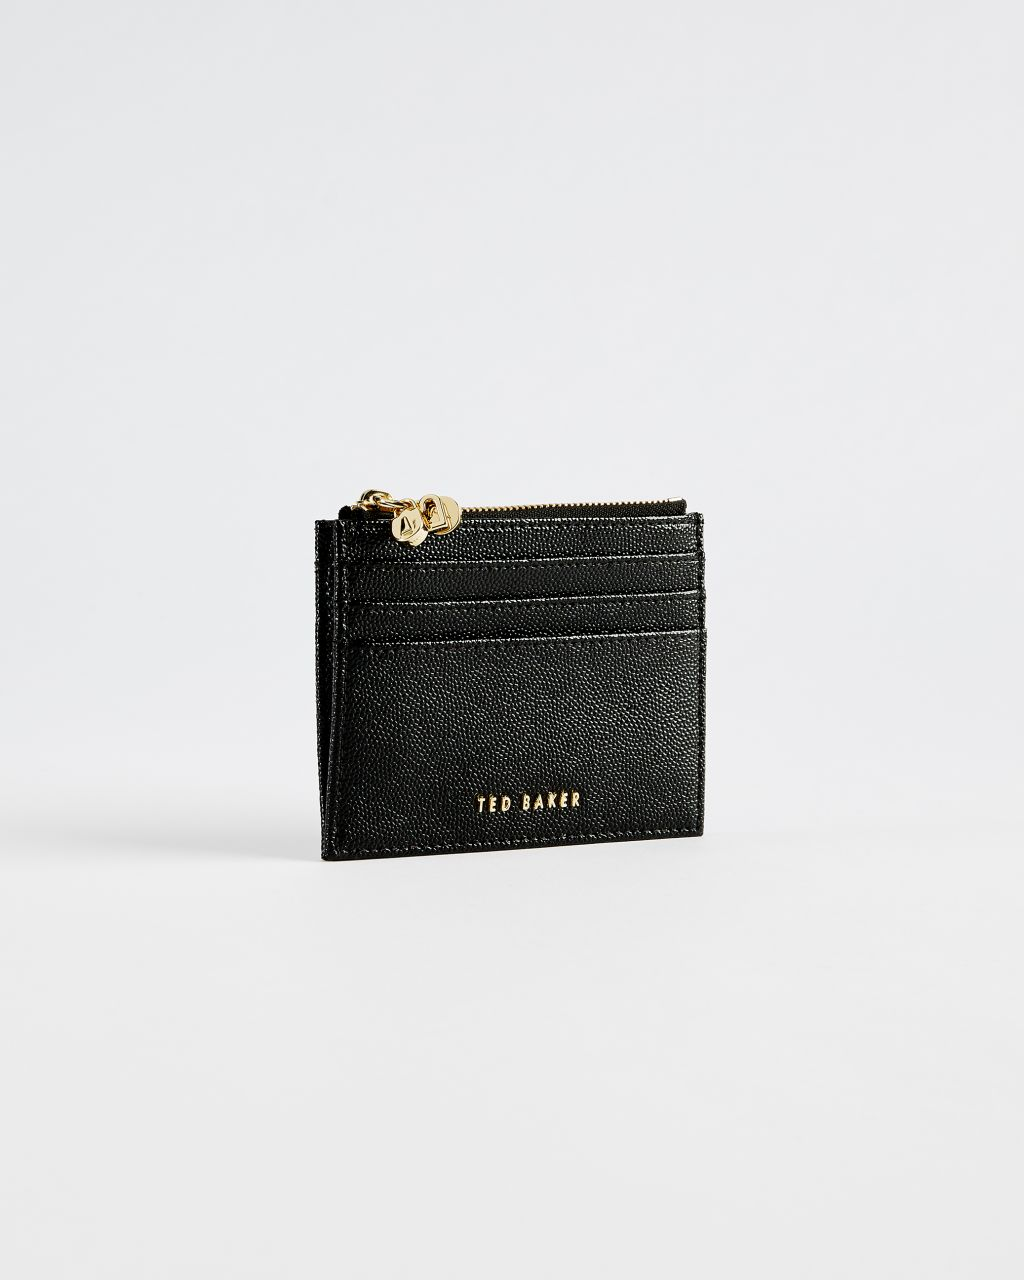 TED BAKER Leather Multi Charm Zip Up Card Wallet | TED BAKER SALE